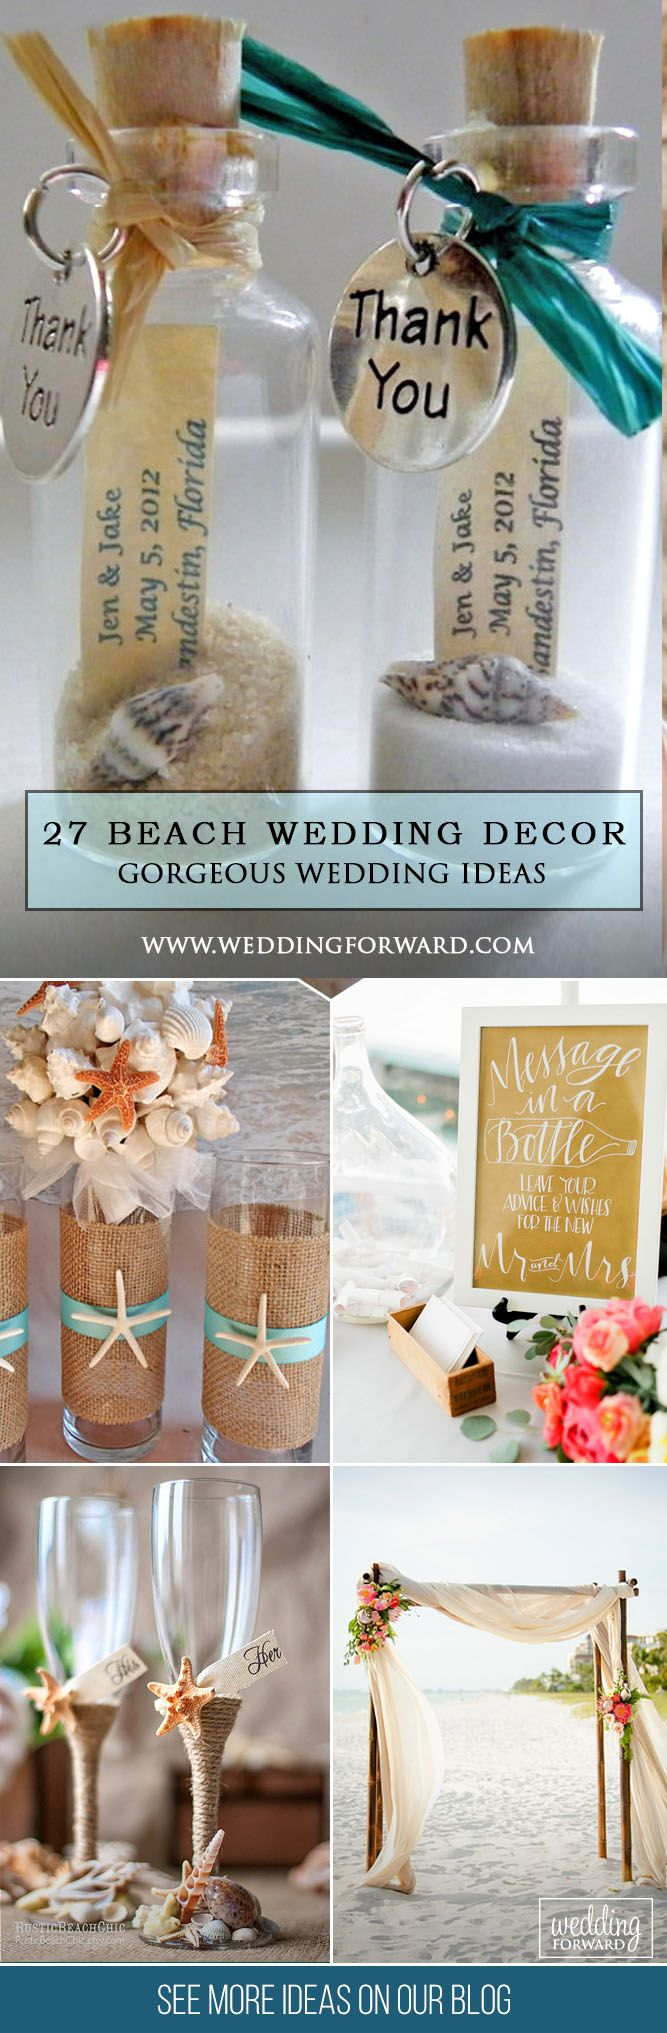 Gorgeous Beach Wedding Decoration Ideas ❤ Beach weddings don't require many decorations, therefore you can make DIY decorations. We propose decor ideas for guests book, centerpieces, beach signs, aisles and arches. See more: http://www.weddingforward.com/beach-wedding-decoration-ideas/ #wedding #beach #decor